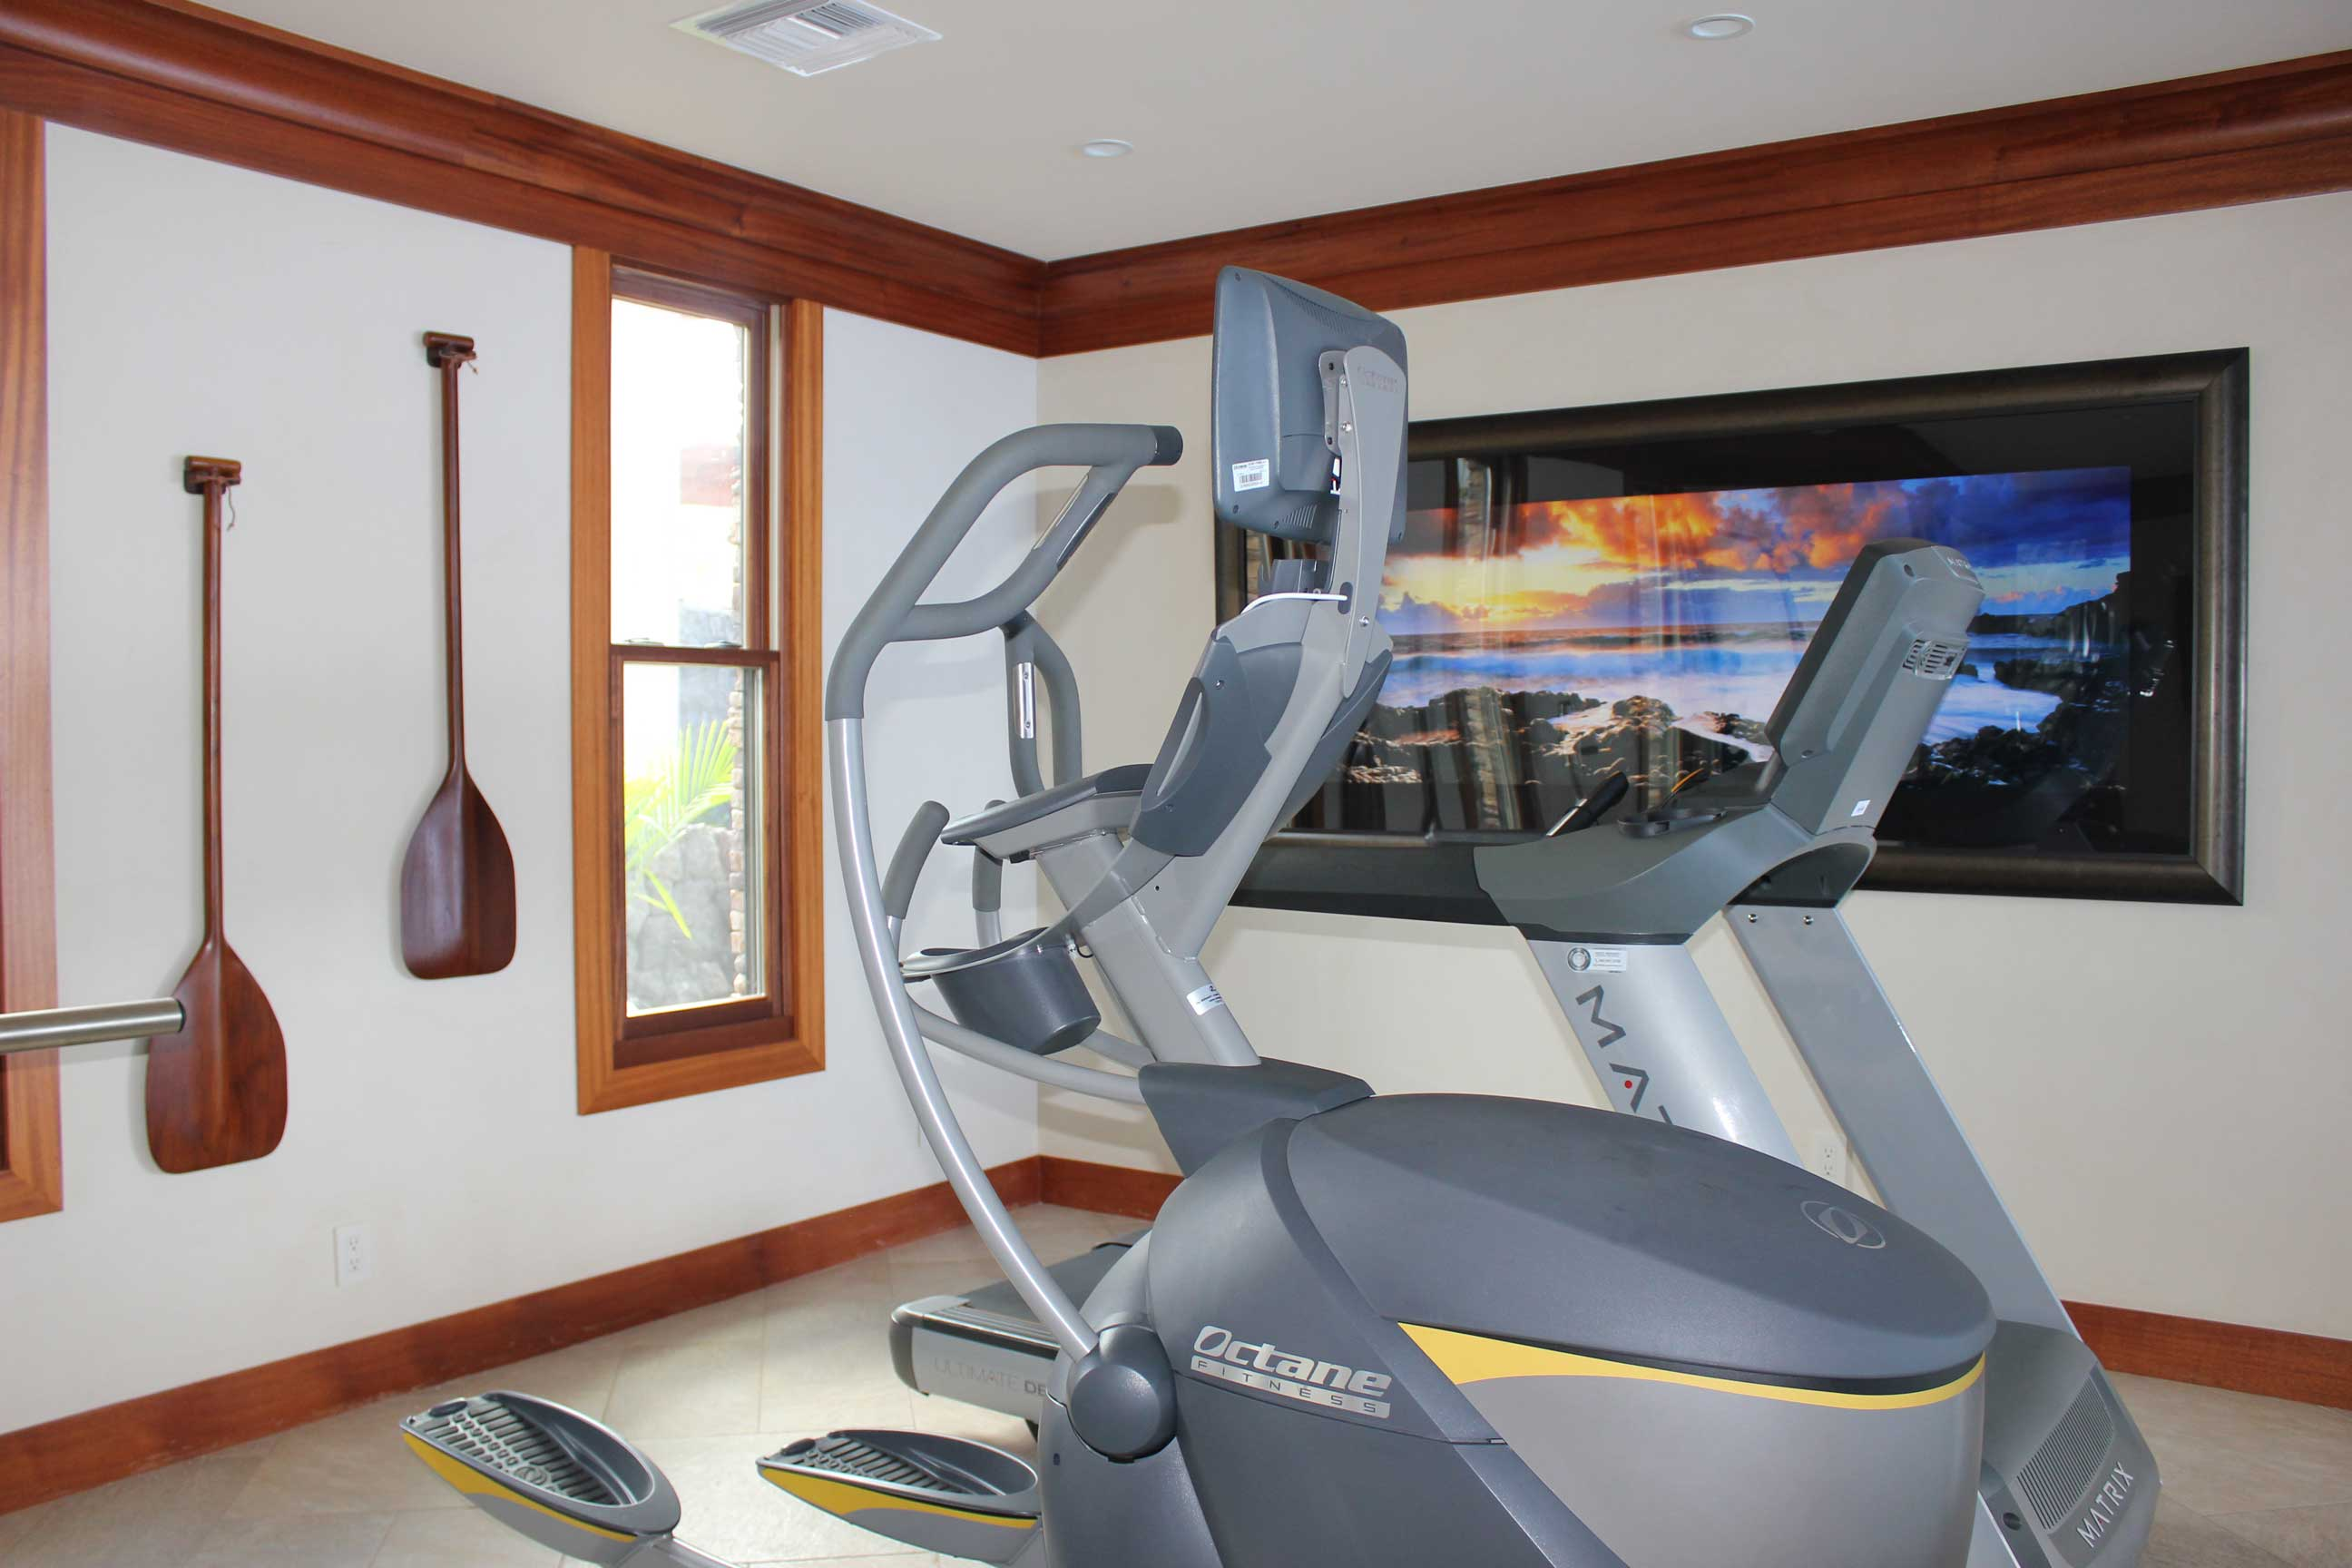 exercise-room-new-years-resolutions-interior-designer-minneapolis.jpg